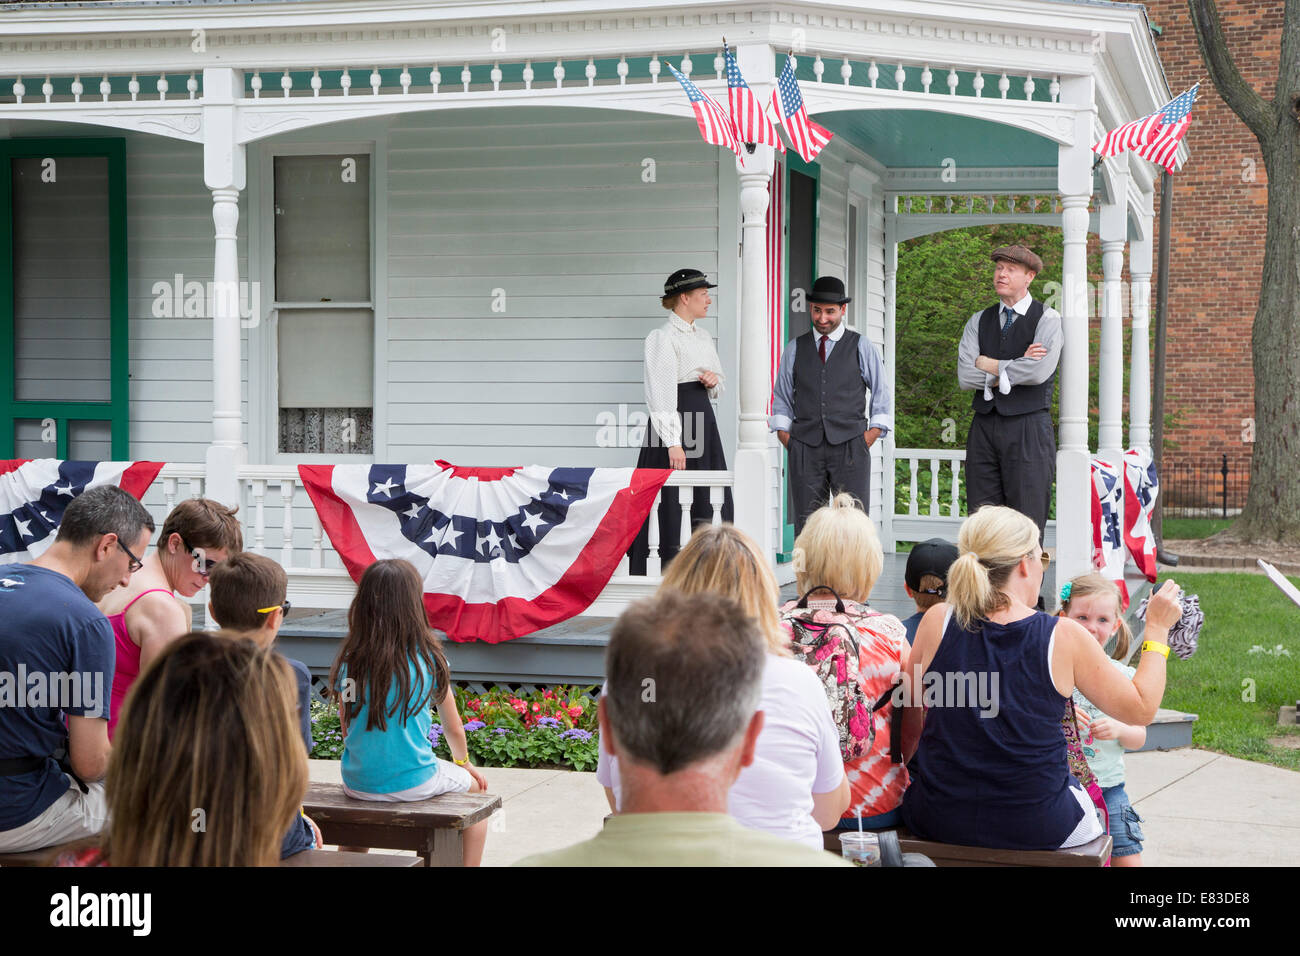 Dearborn, Michigan - The Wright Home at Greenfield Village. - Stock Image